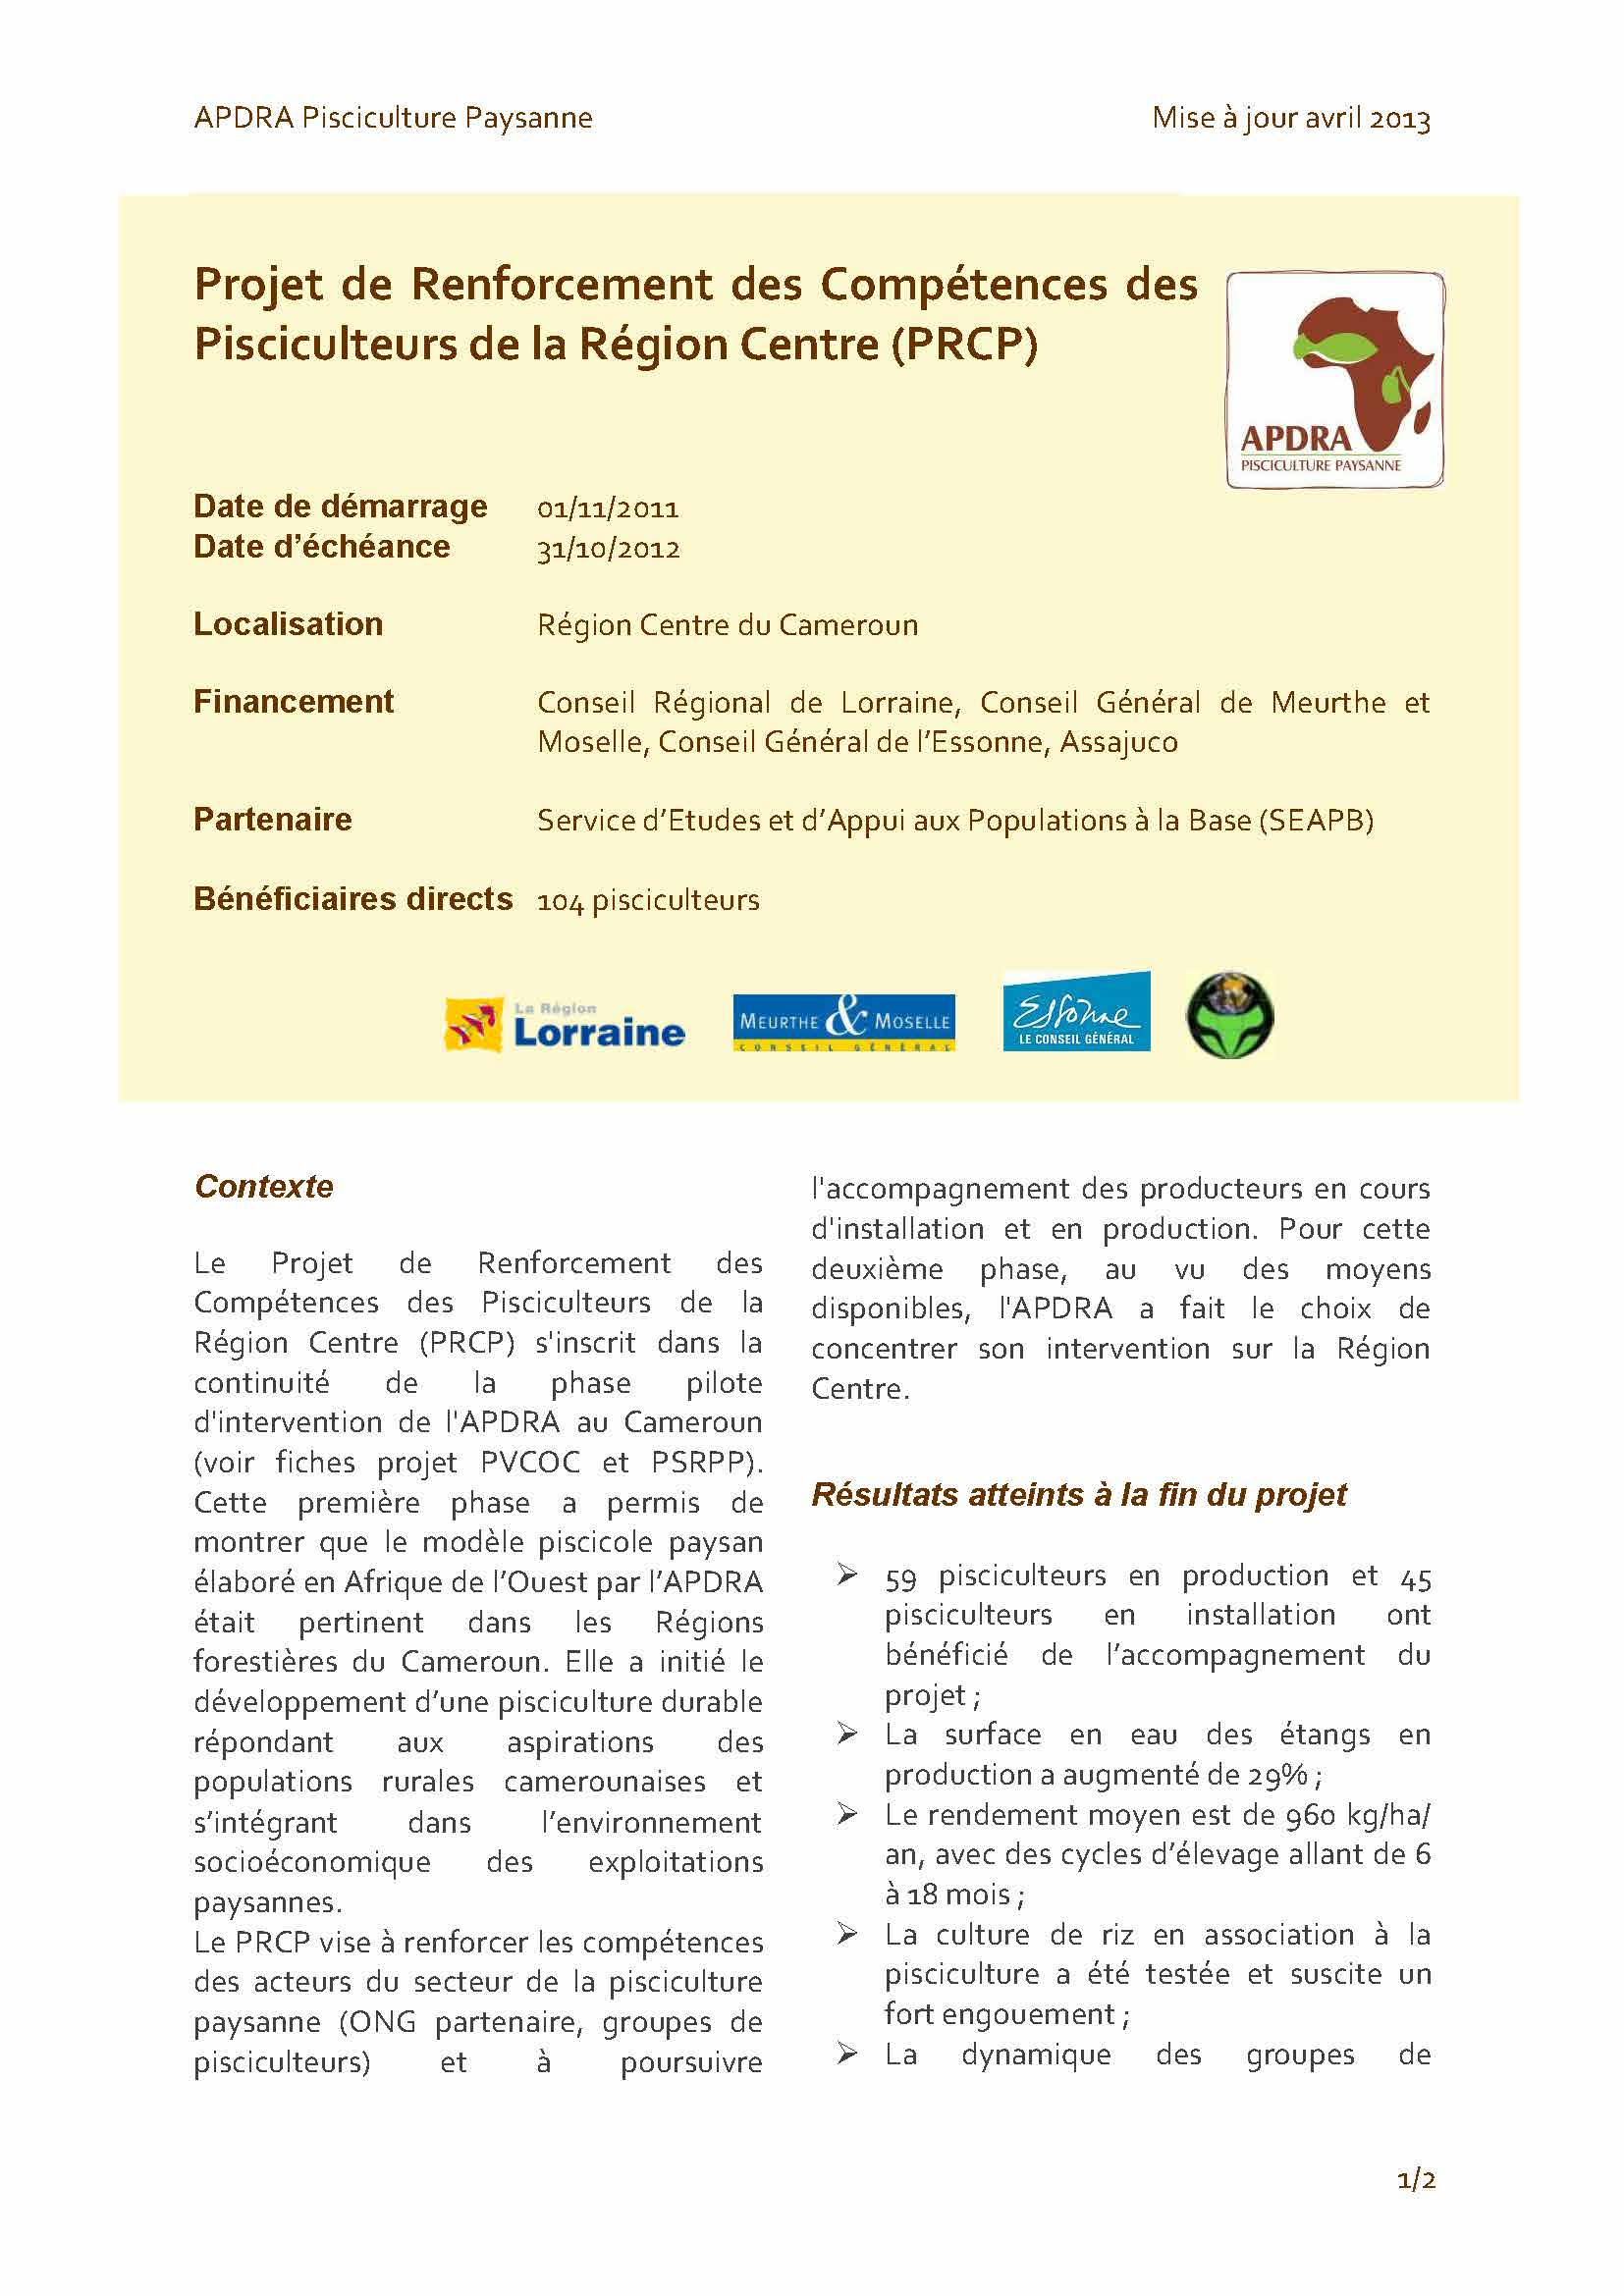 fiche projet PRCP